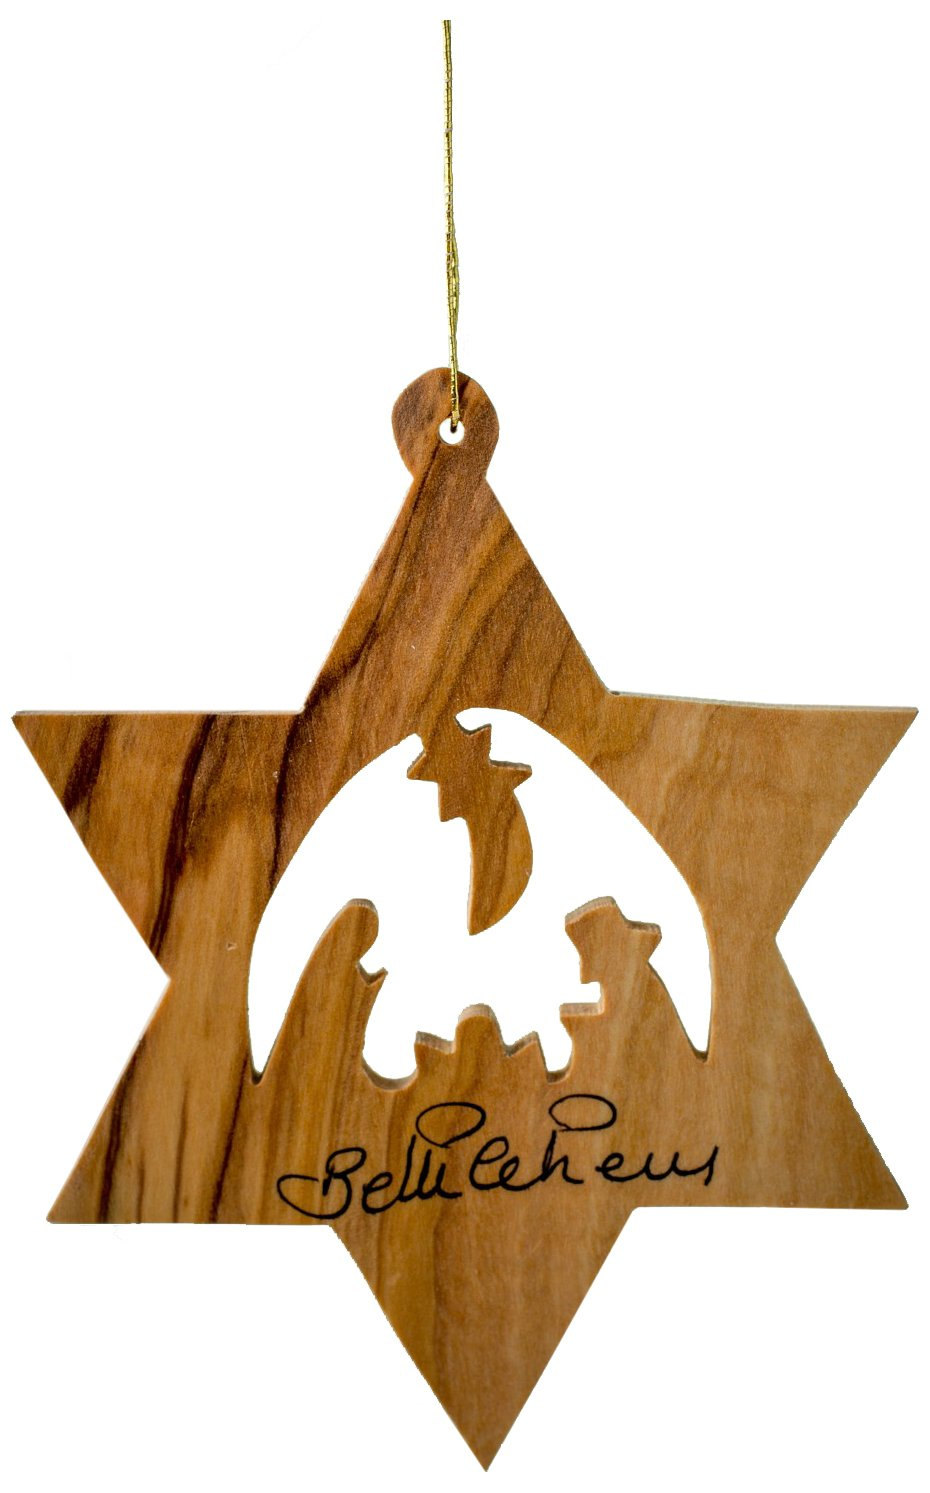 Earthwood Olive Wood Star of David with Nativity Ornament by Earthwood (Image #1)